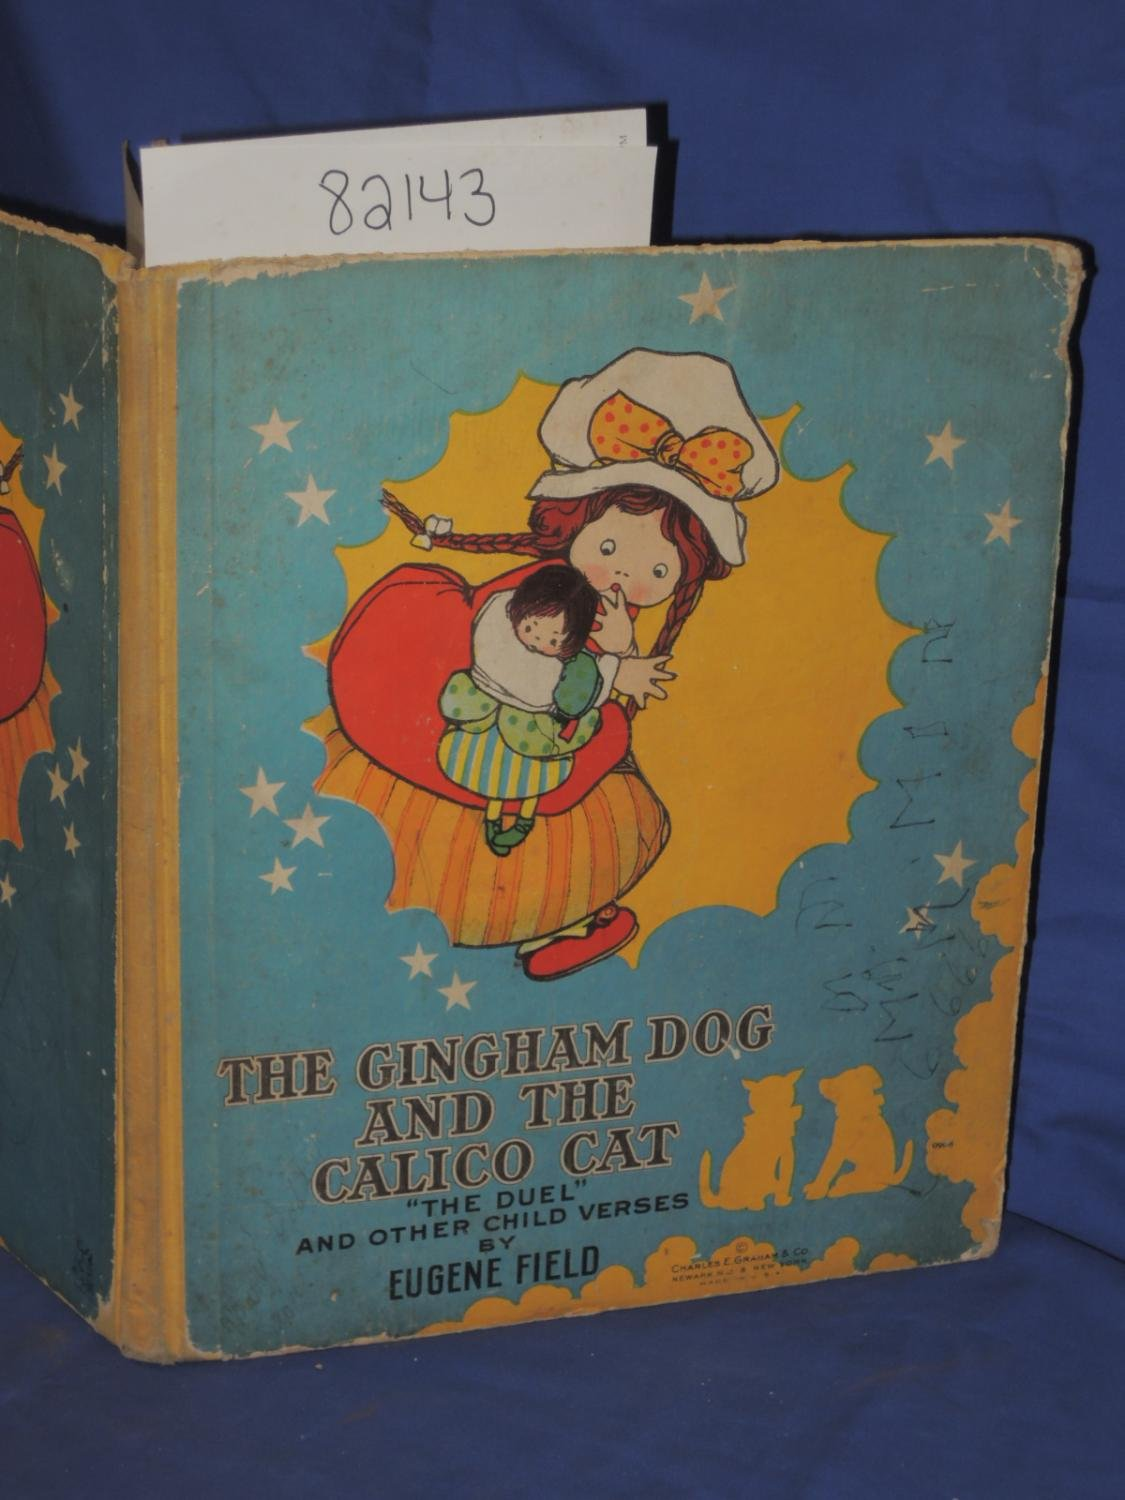 the gingham dog and the calico cat poem